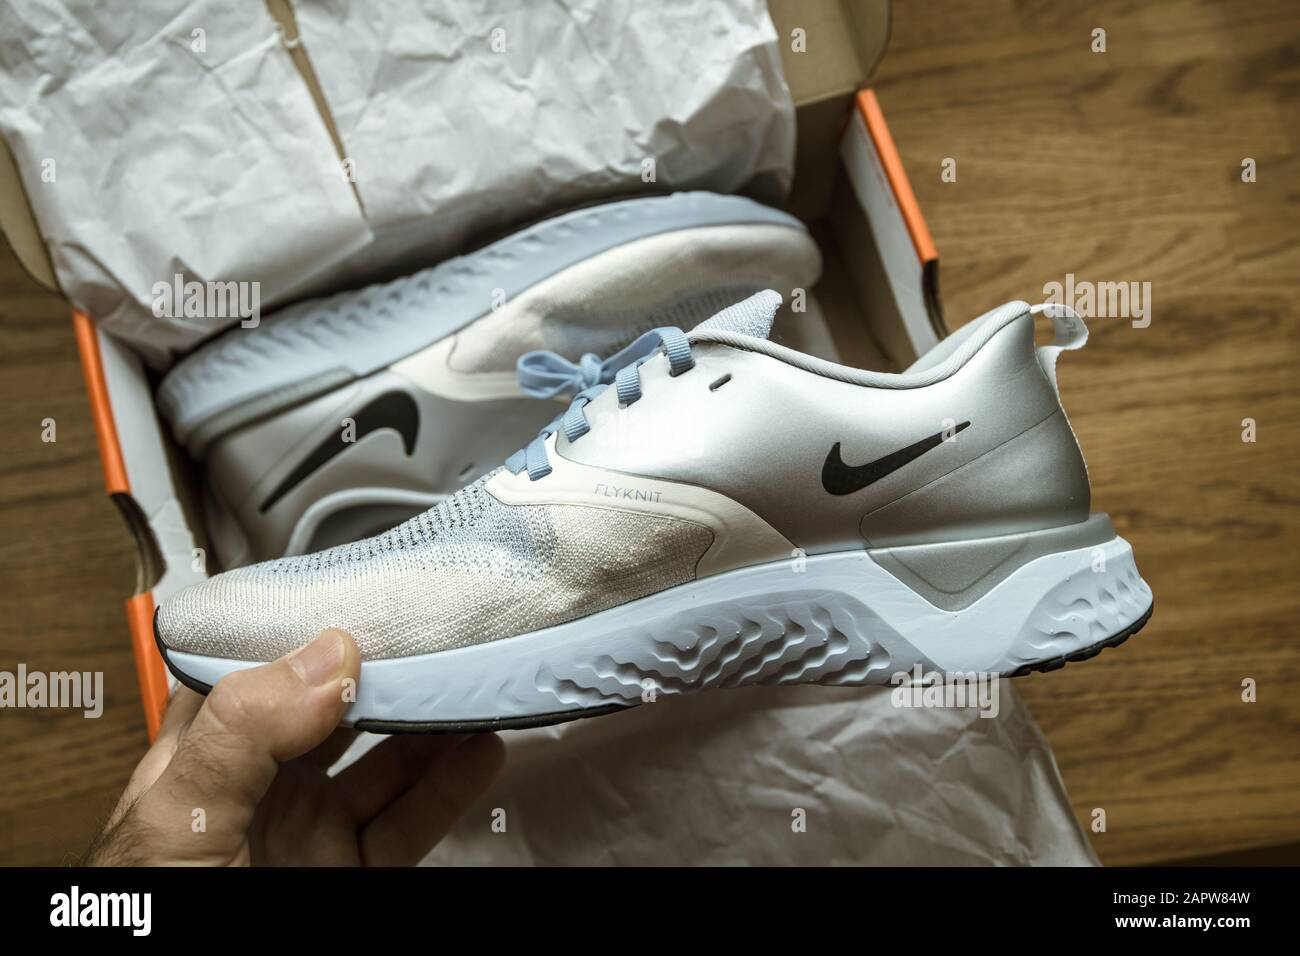 official photos aliexpress utterly stylish Paris, France - Sep 23, 2019: POV man hand Unboxing unpacking on ...